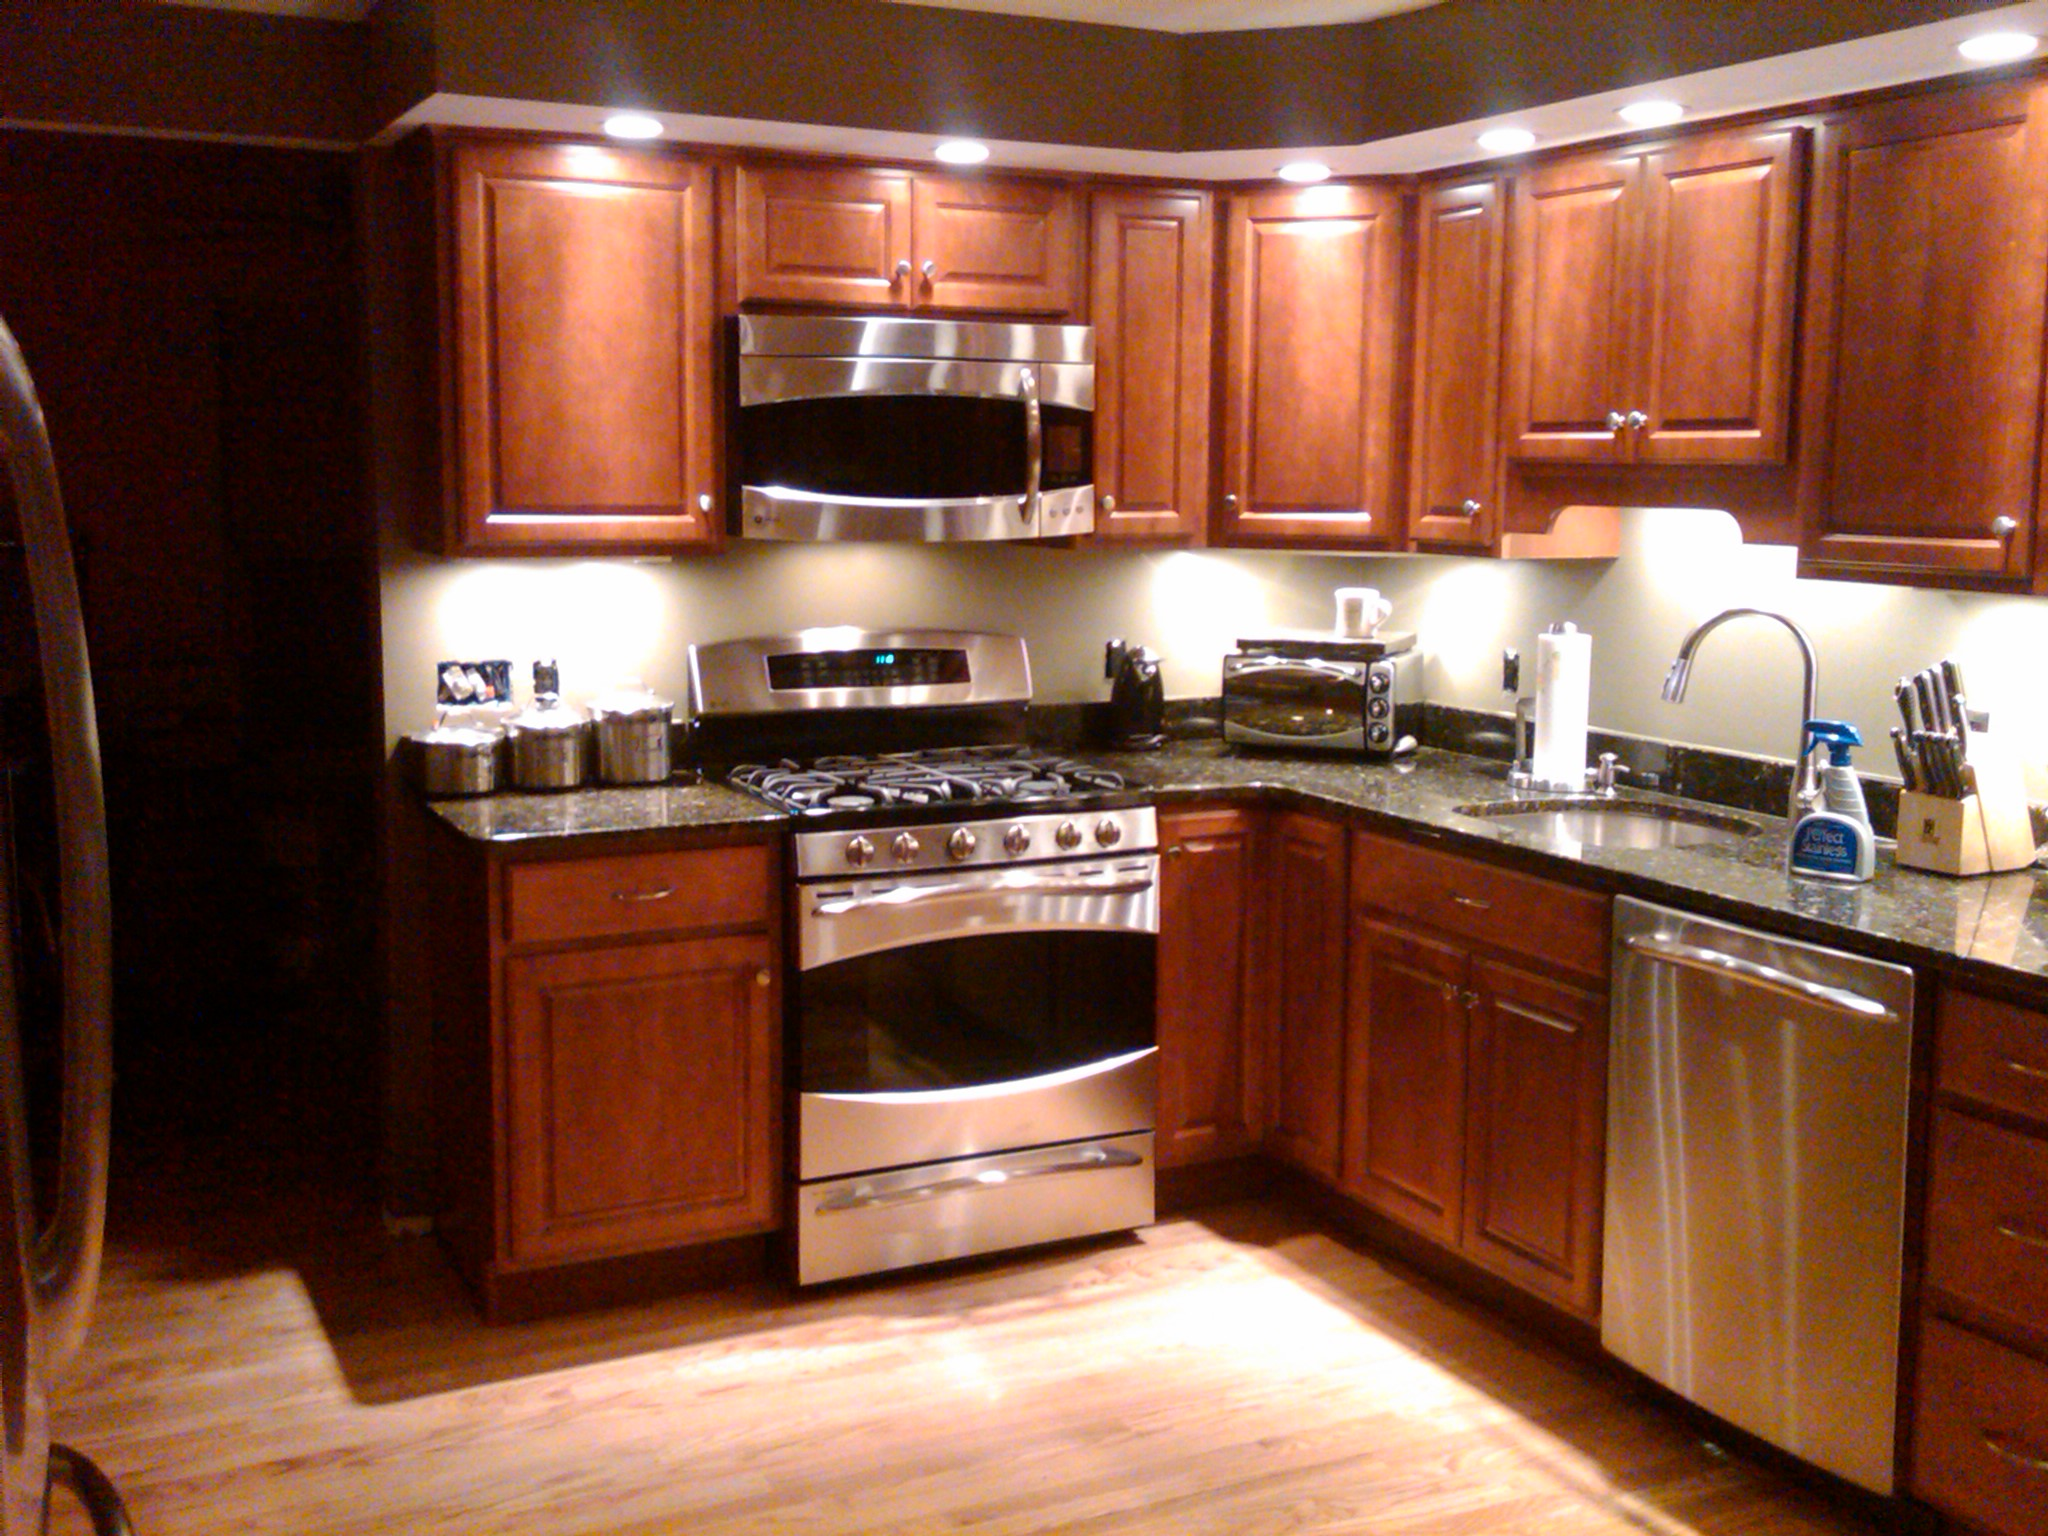 I ... & Recessed lights and undercabinet lights in a kitchen. | Foley ... azcodes.com